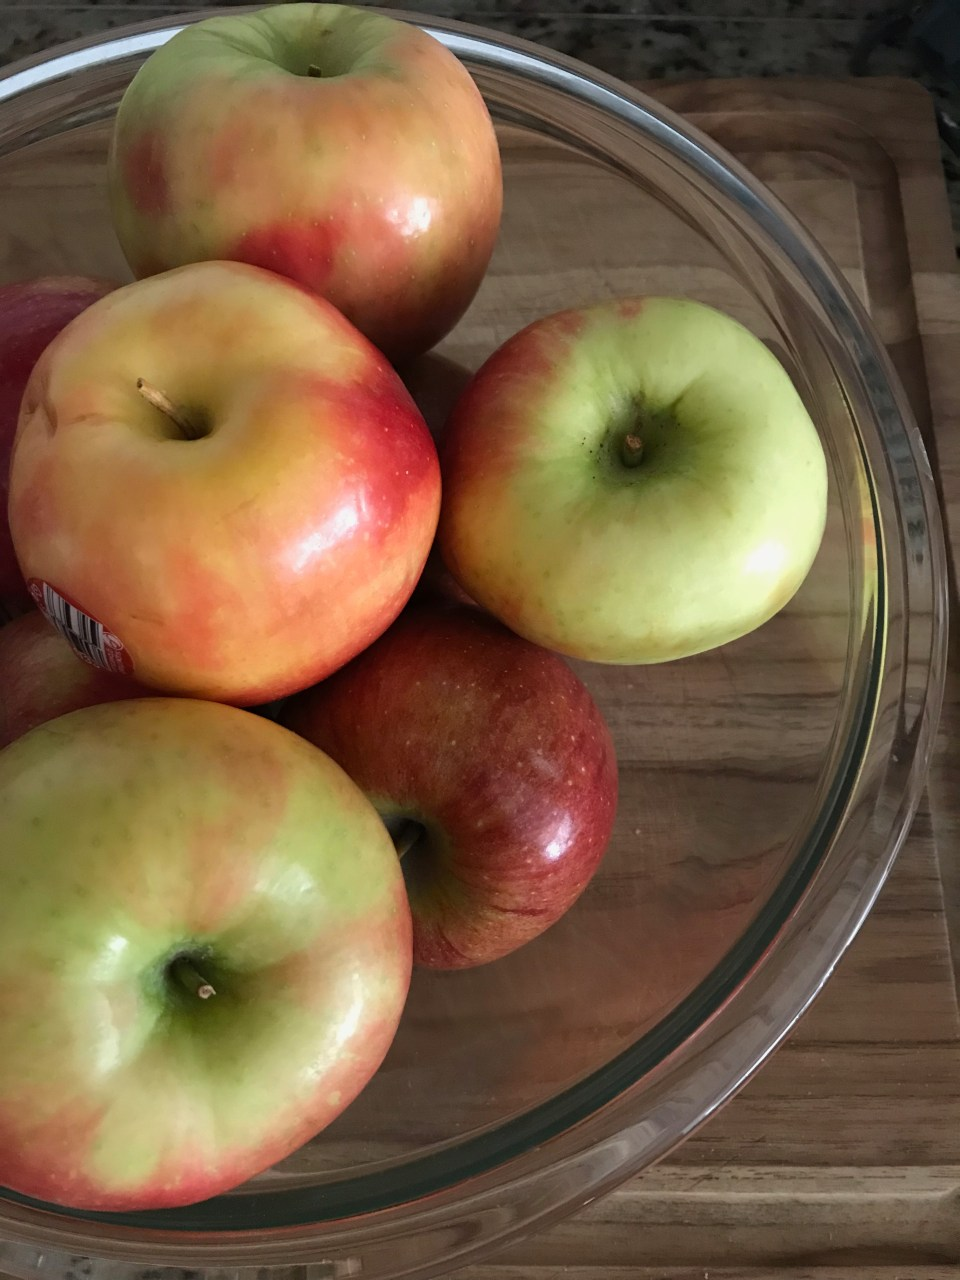 pick a tart and a sweet apple for a great balanced pie